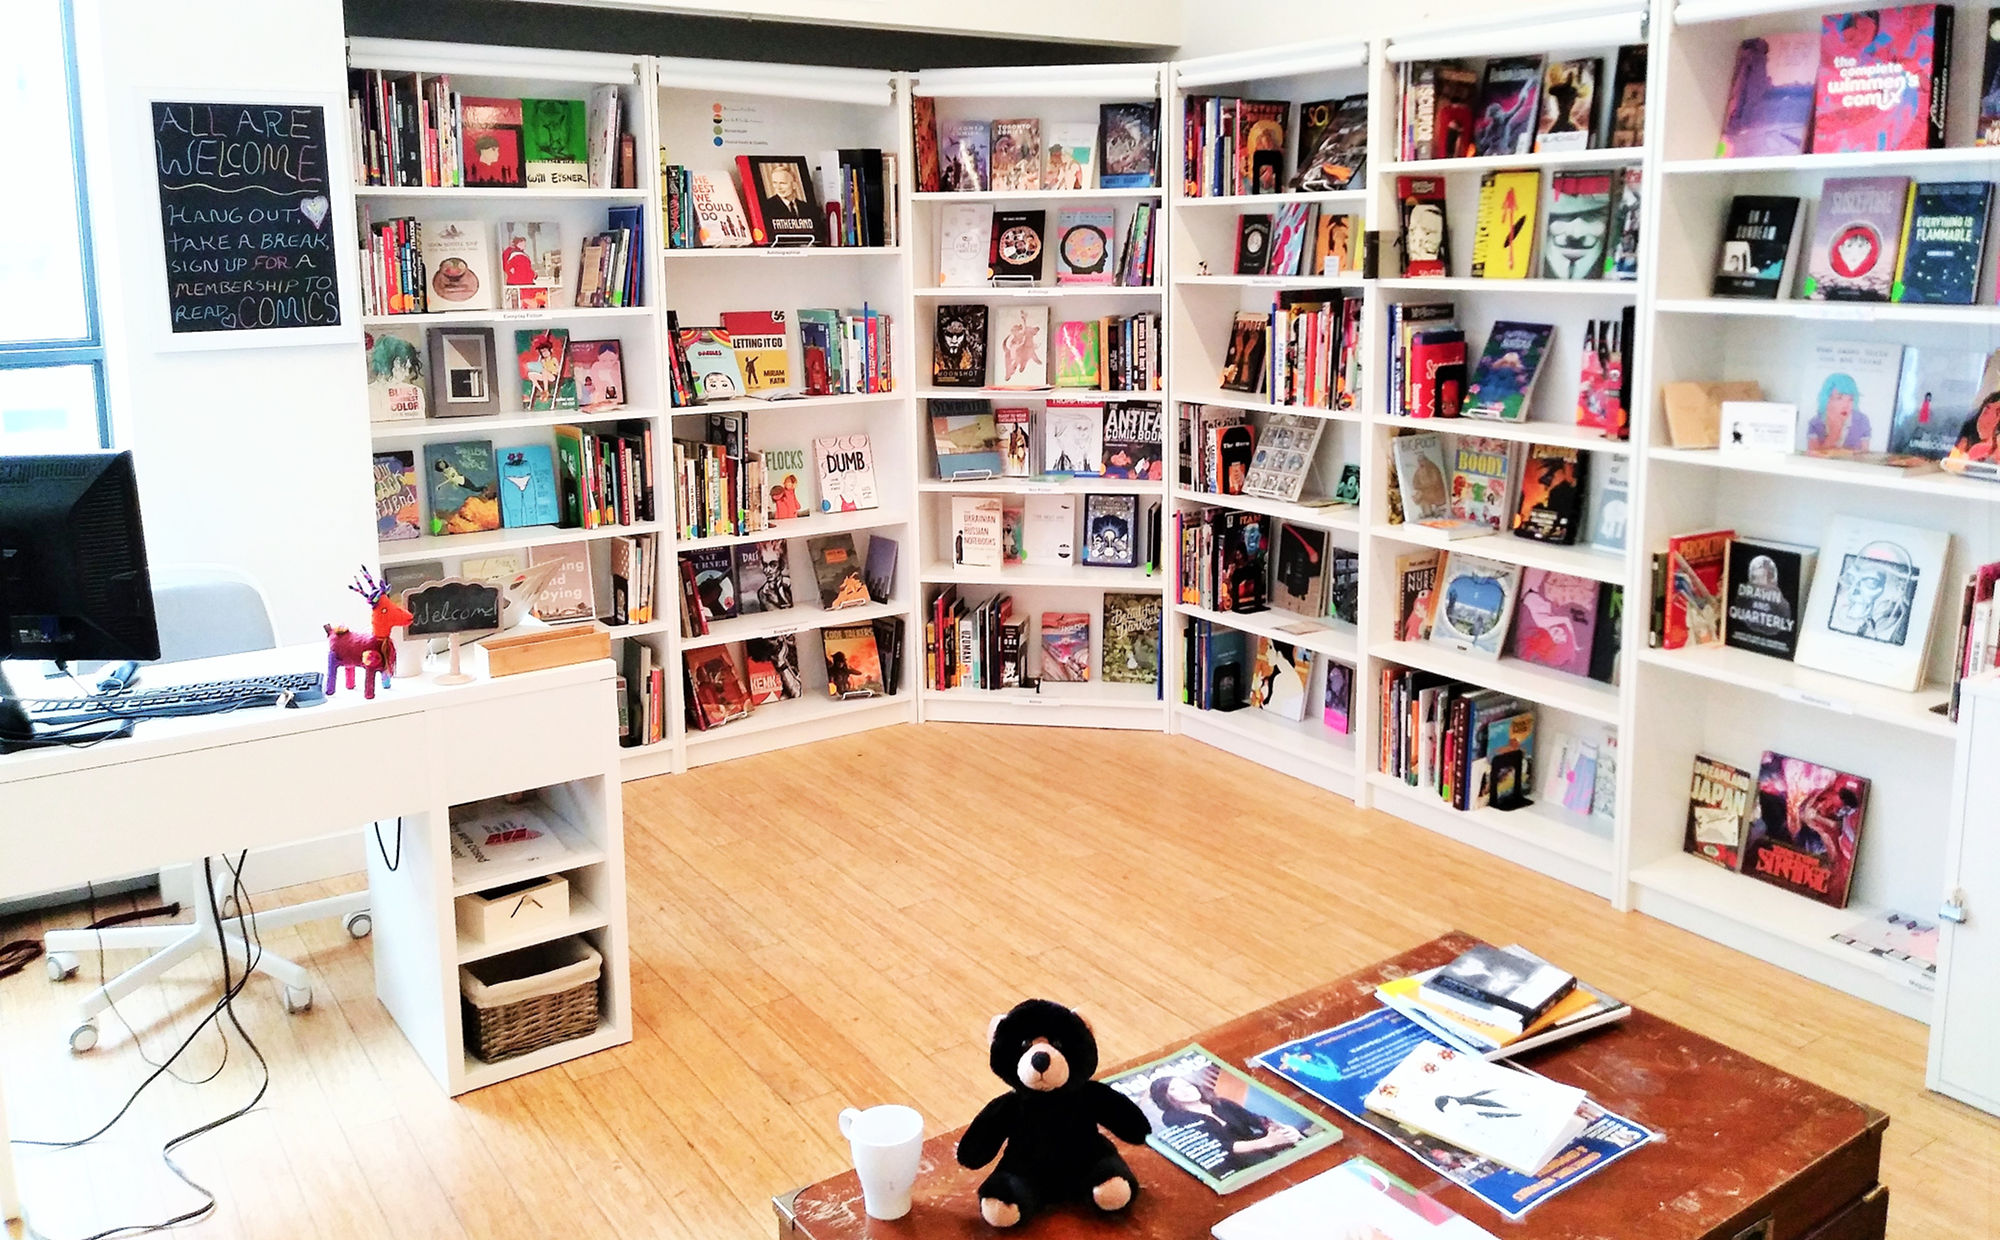 All are welcome at the Canada Comics Open Library Toronto Branch